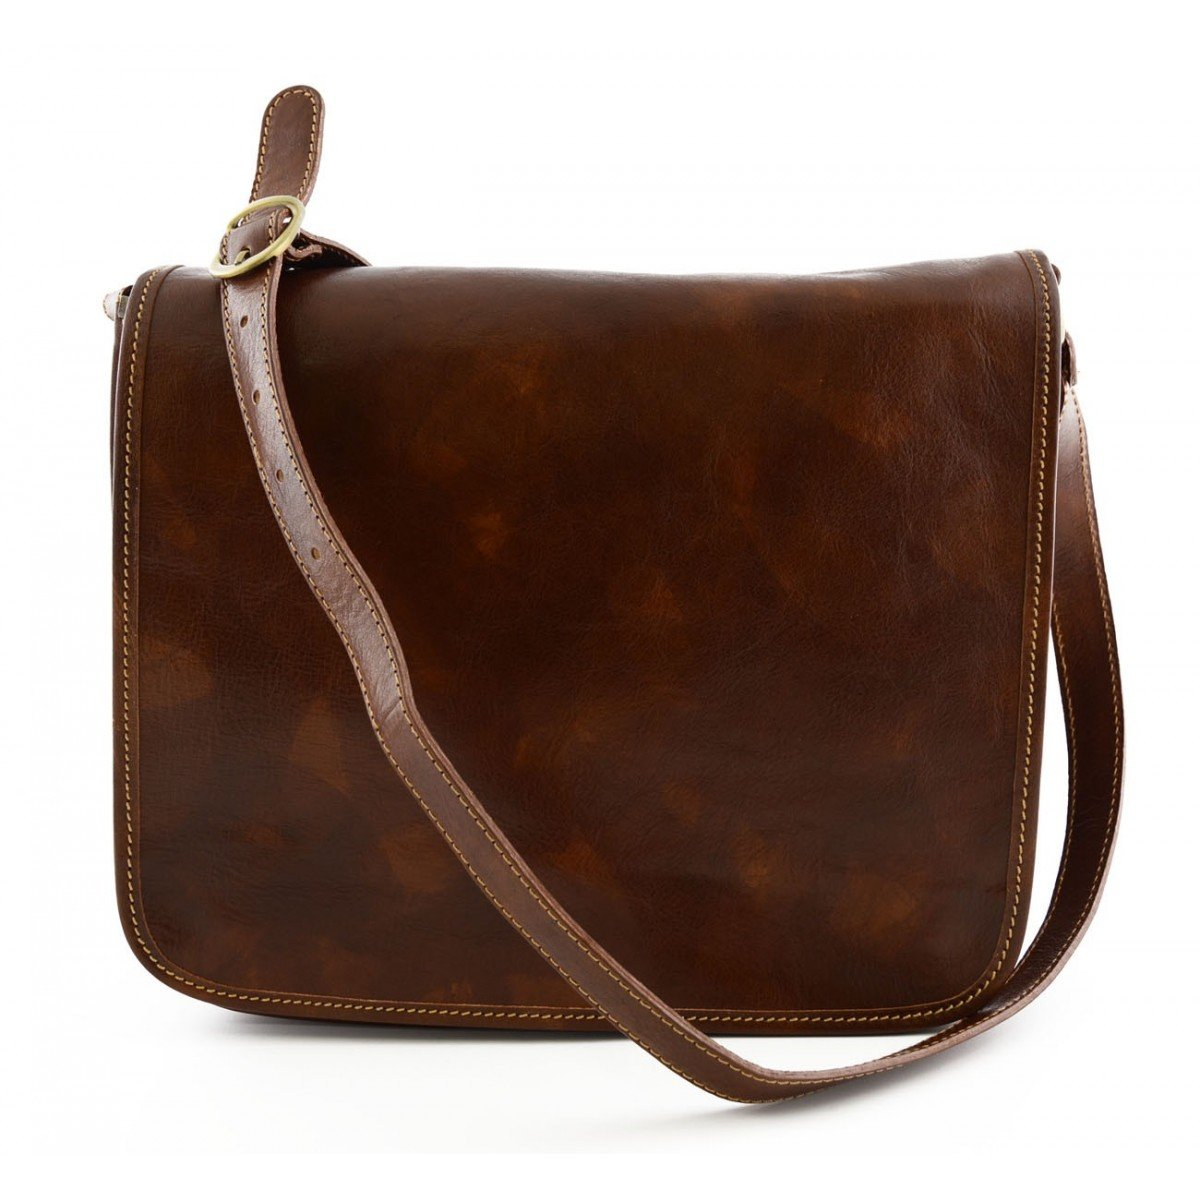 Made In Italy Genuine Leather Messenger Bag 2 Compartments Color Brown - Man Bag B01BL5AVPQ